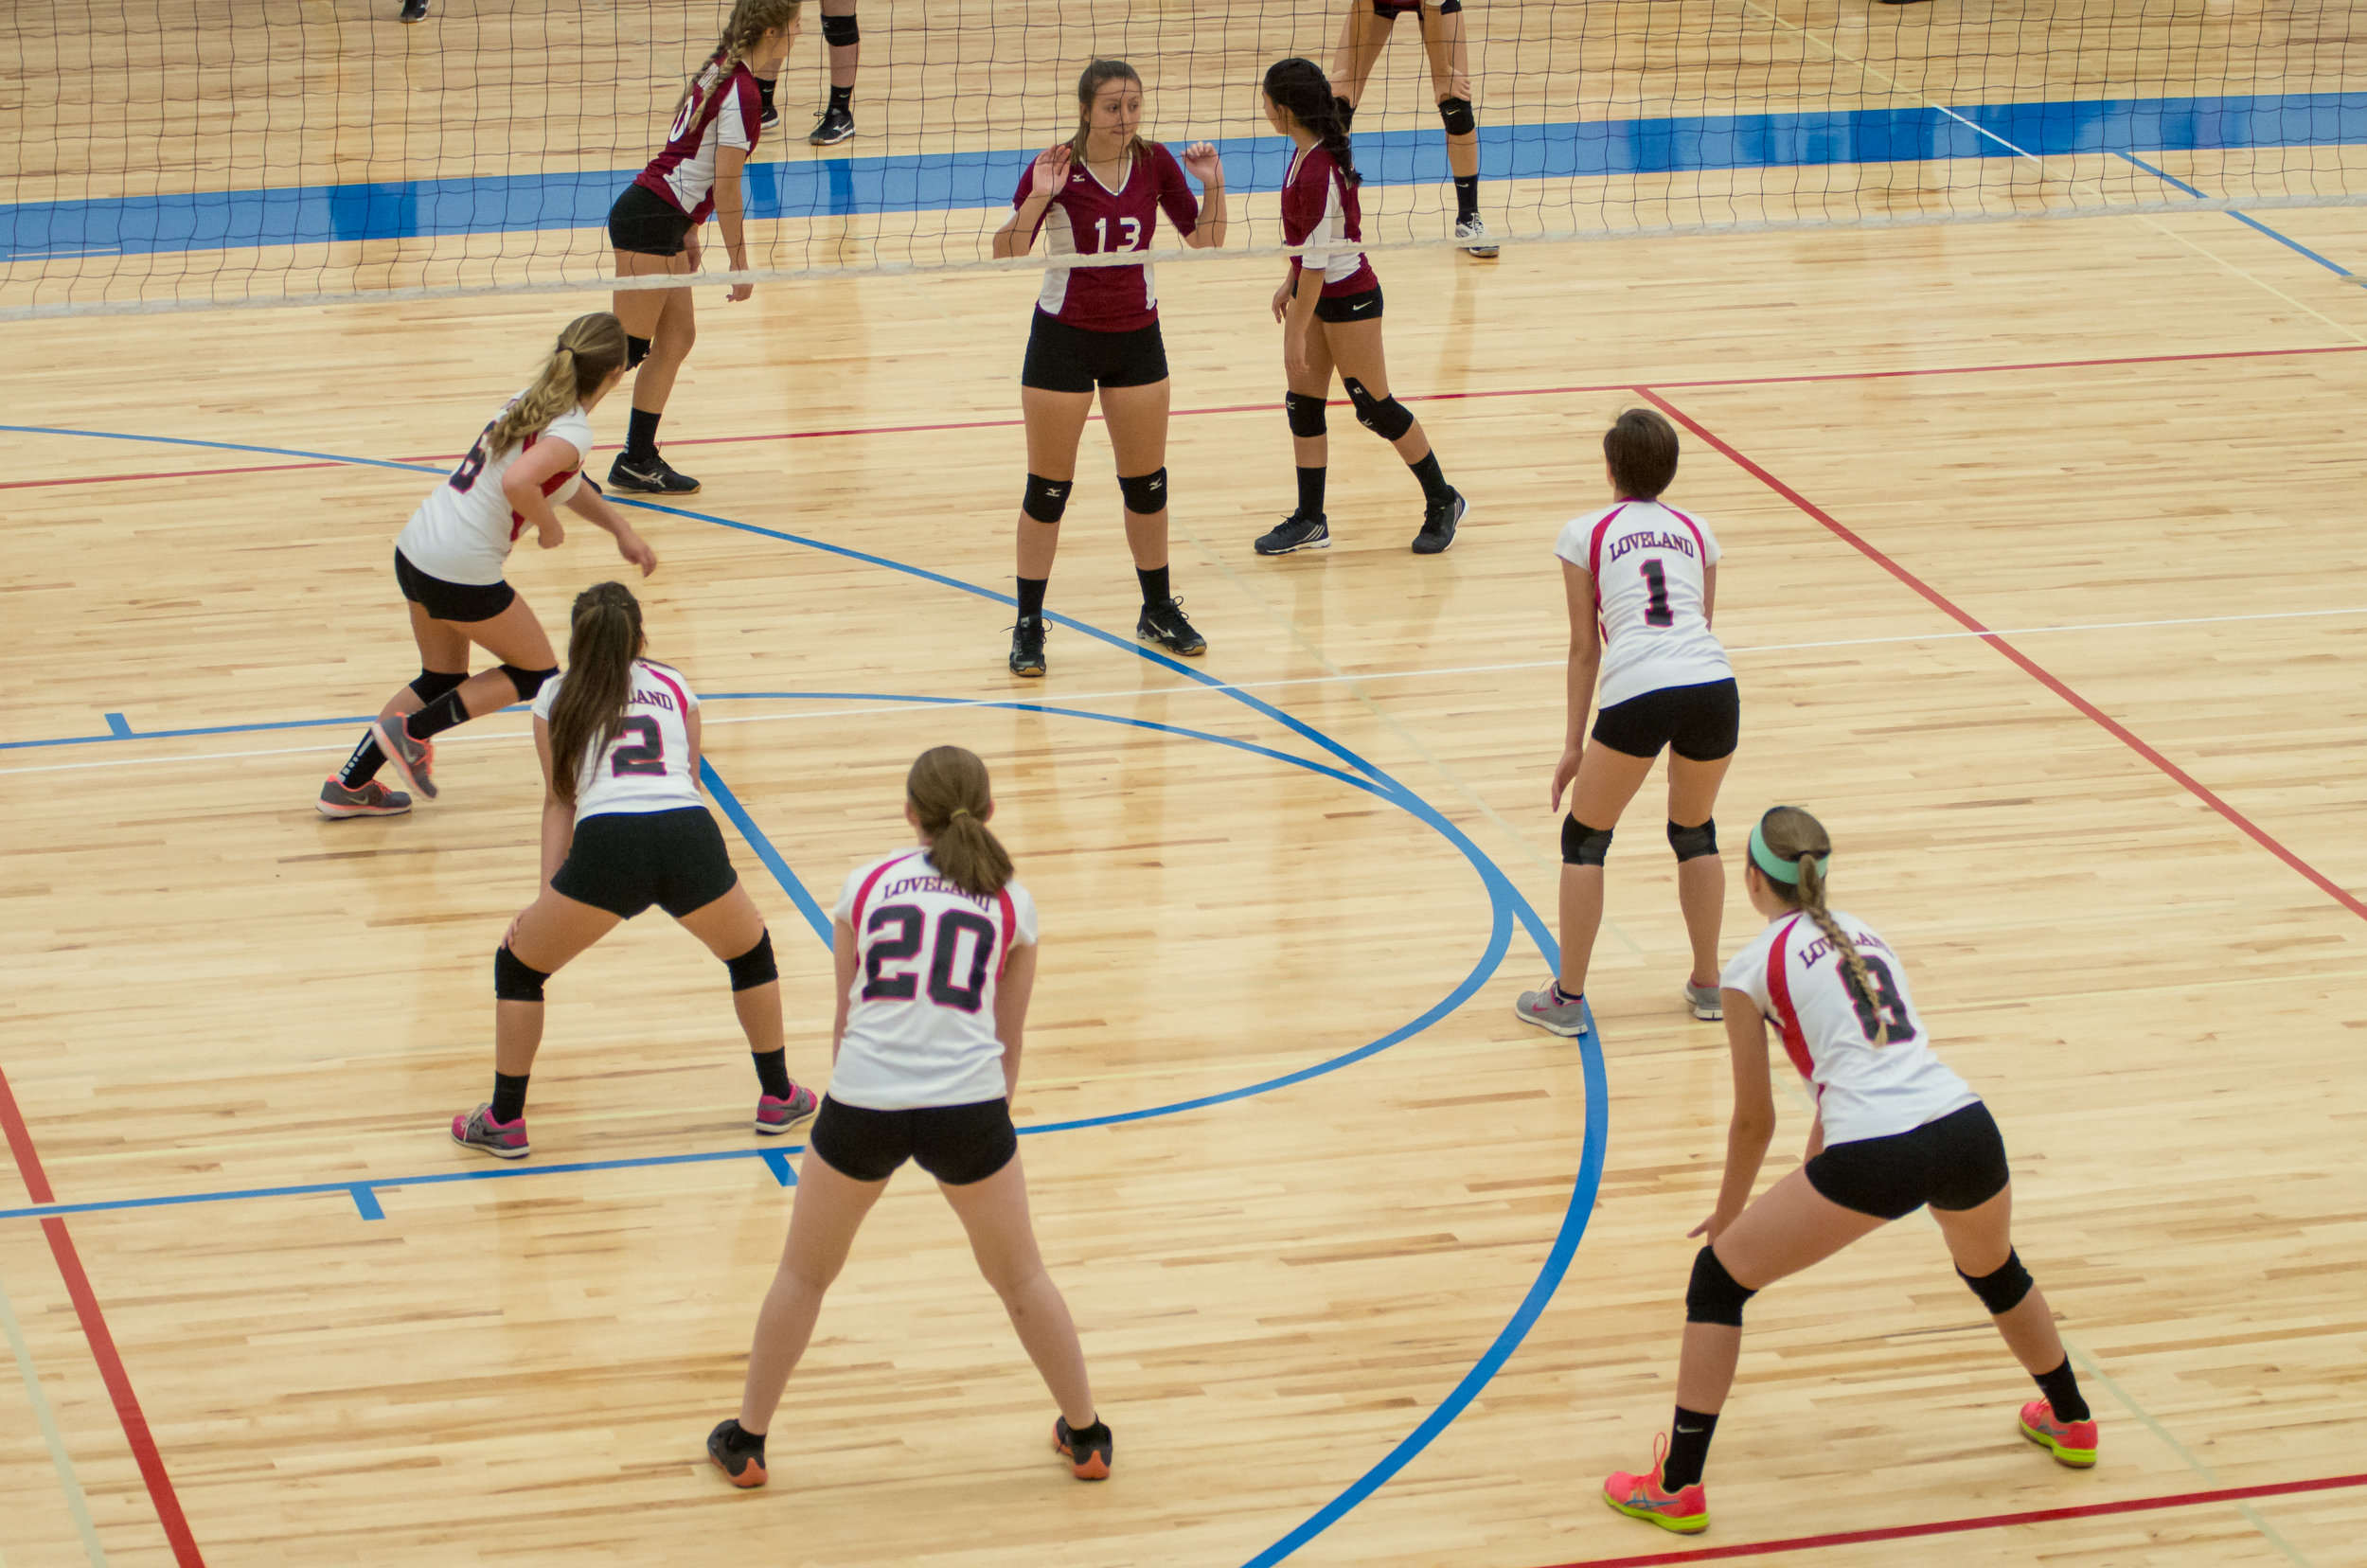 20160917-LHS Volleyball - Poudre Challenge-PMG_3312.jpg